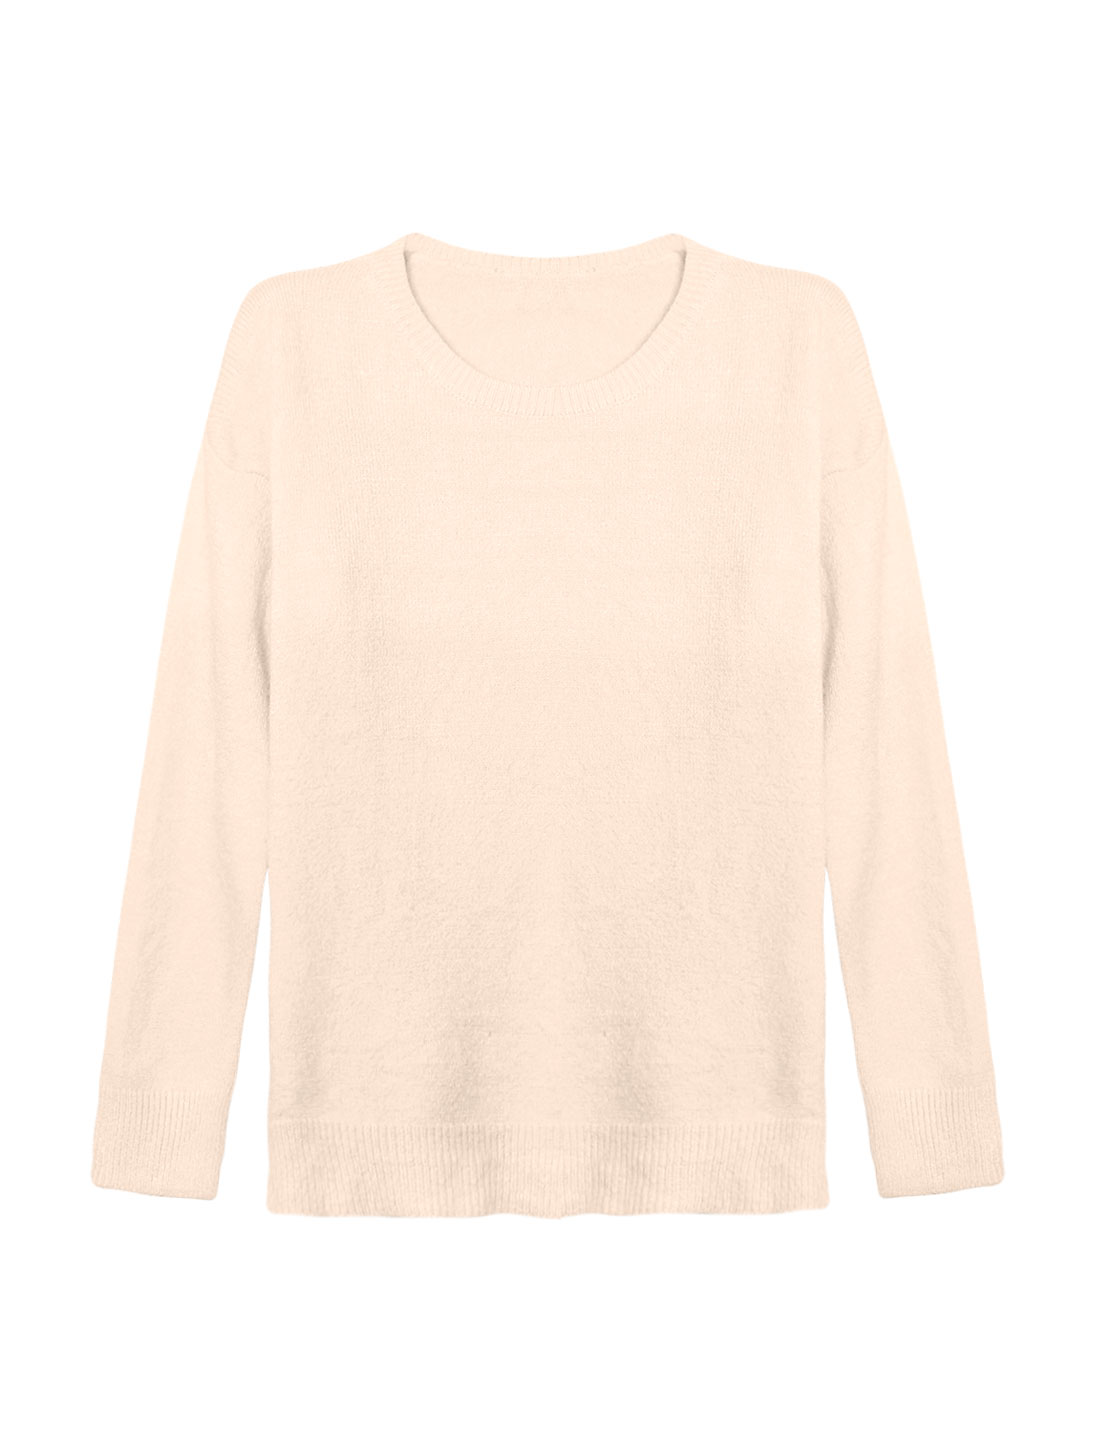 Woman Crew Neck Dolman Sleeves Ribbed Trim Knit Shirt Beige XS